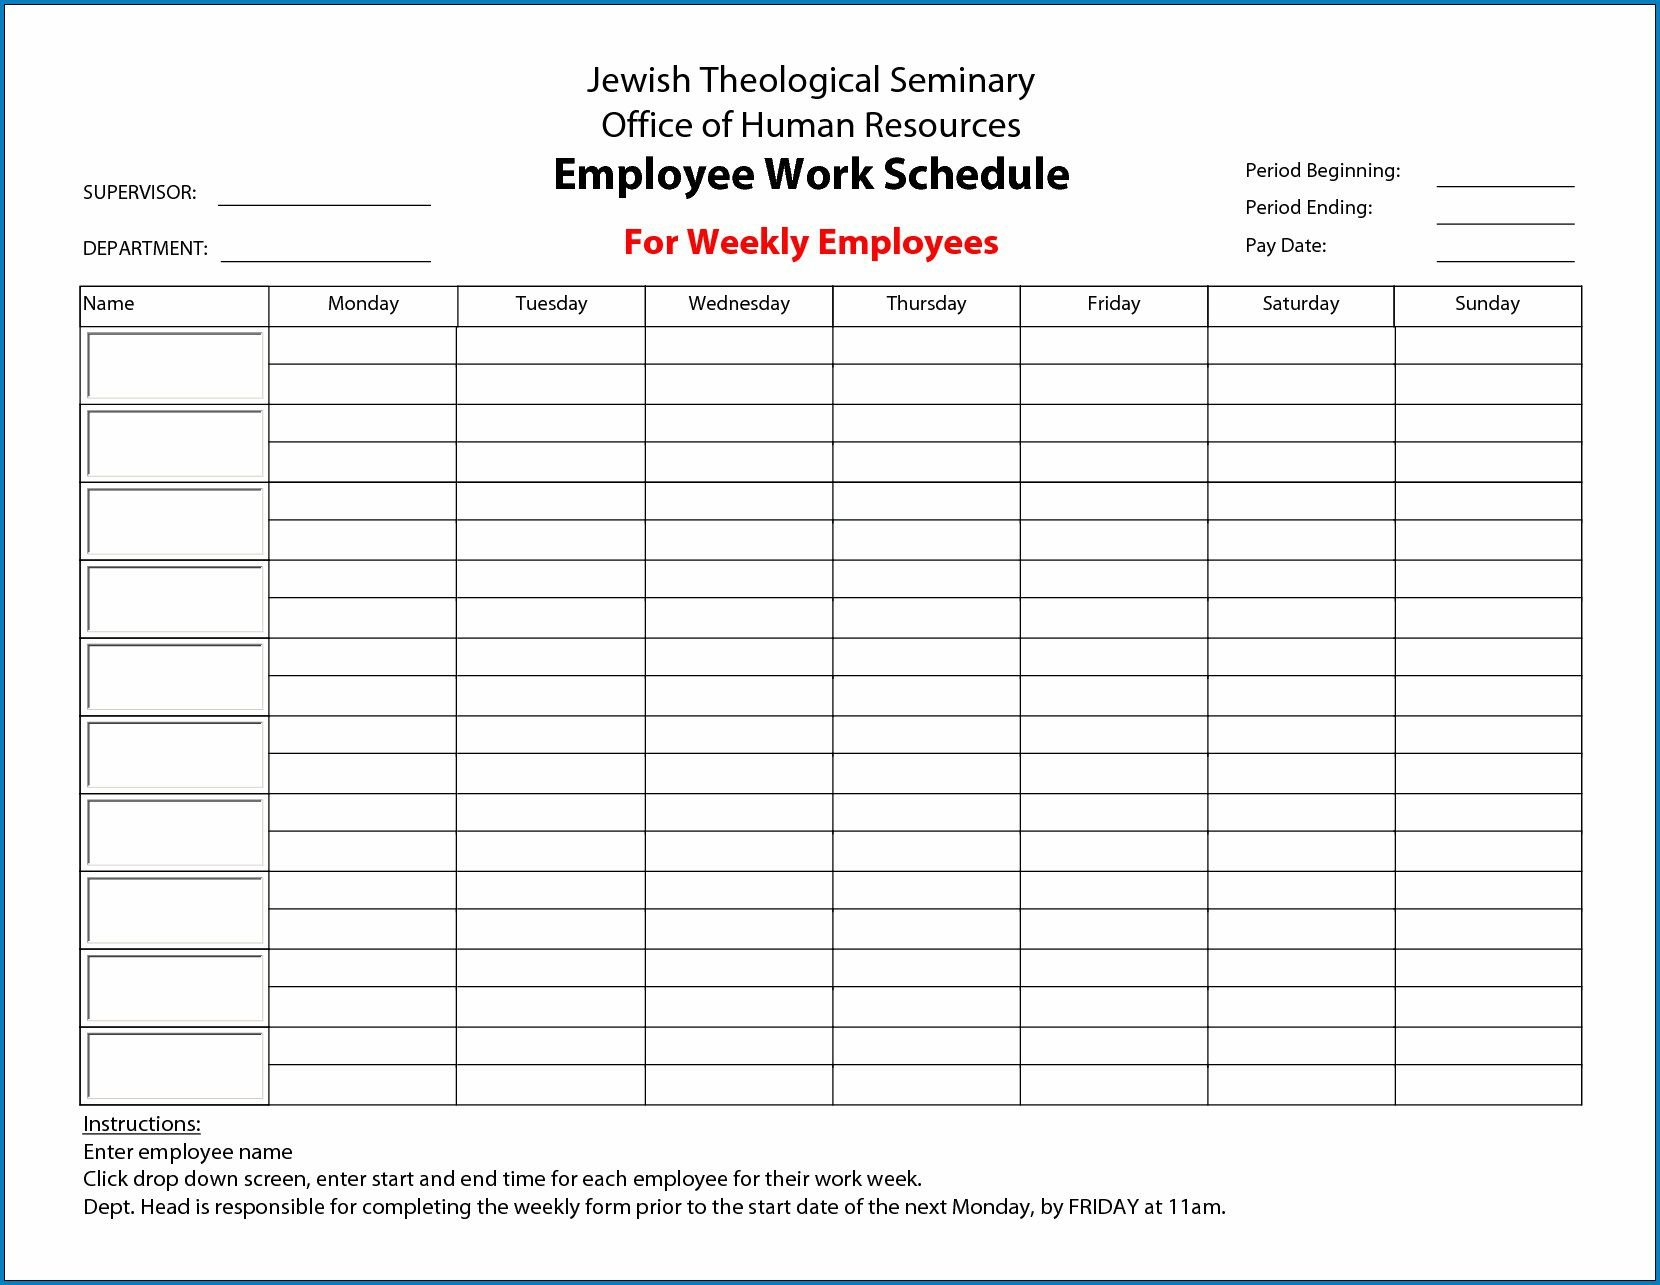 009 Fascinating Employee Schedule Template Free Image Monday Through Friday Schedule Template Free